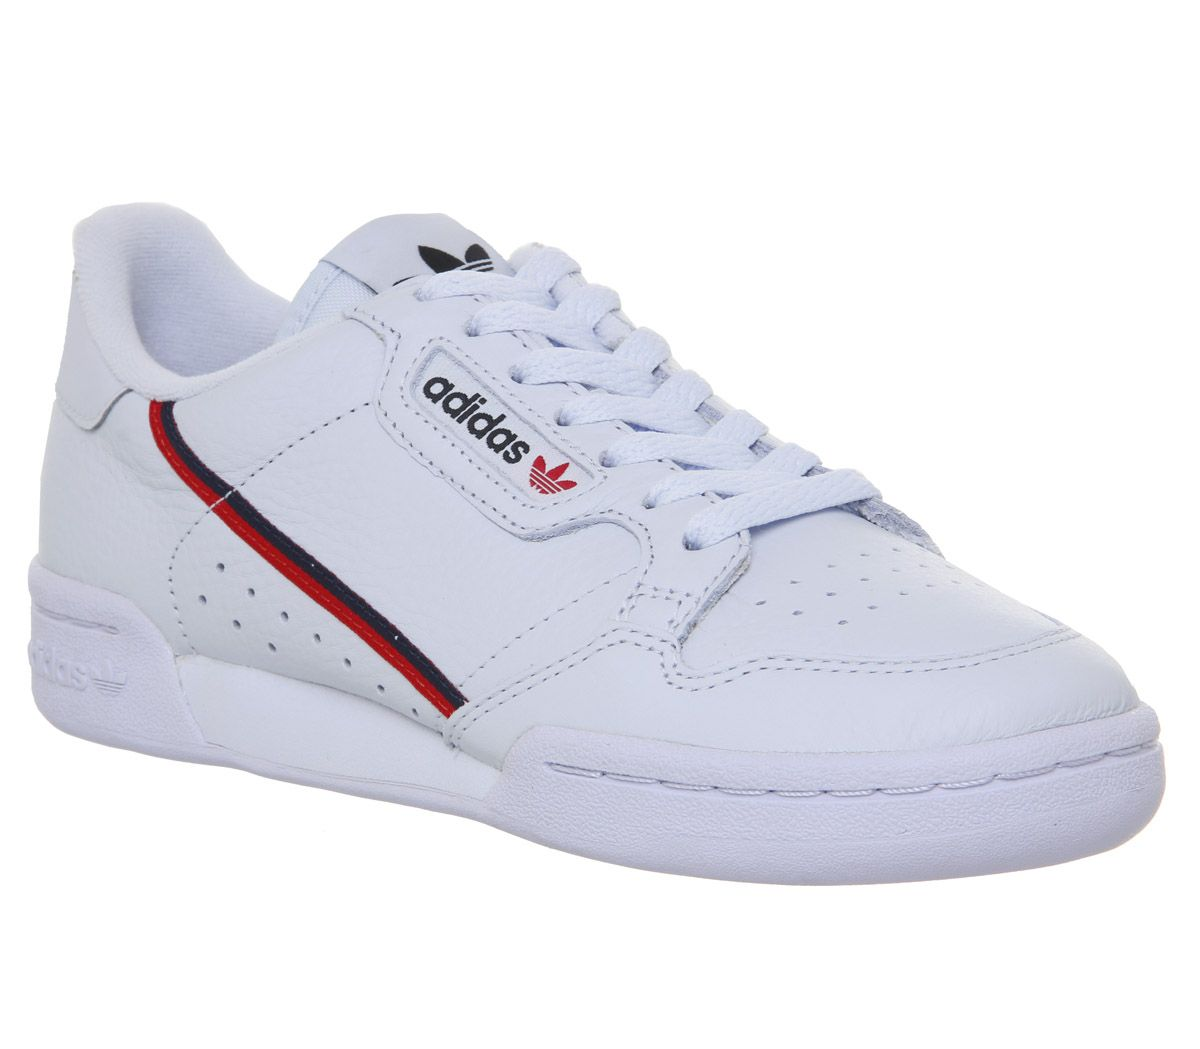 pretty nice c39b6 554c4 adidas Continental 80s Trainers Aero Blue Scarlet Collegiate Navy ...